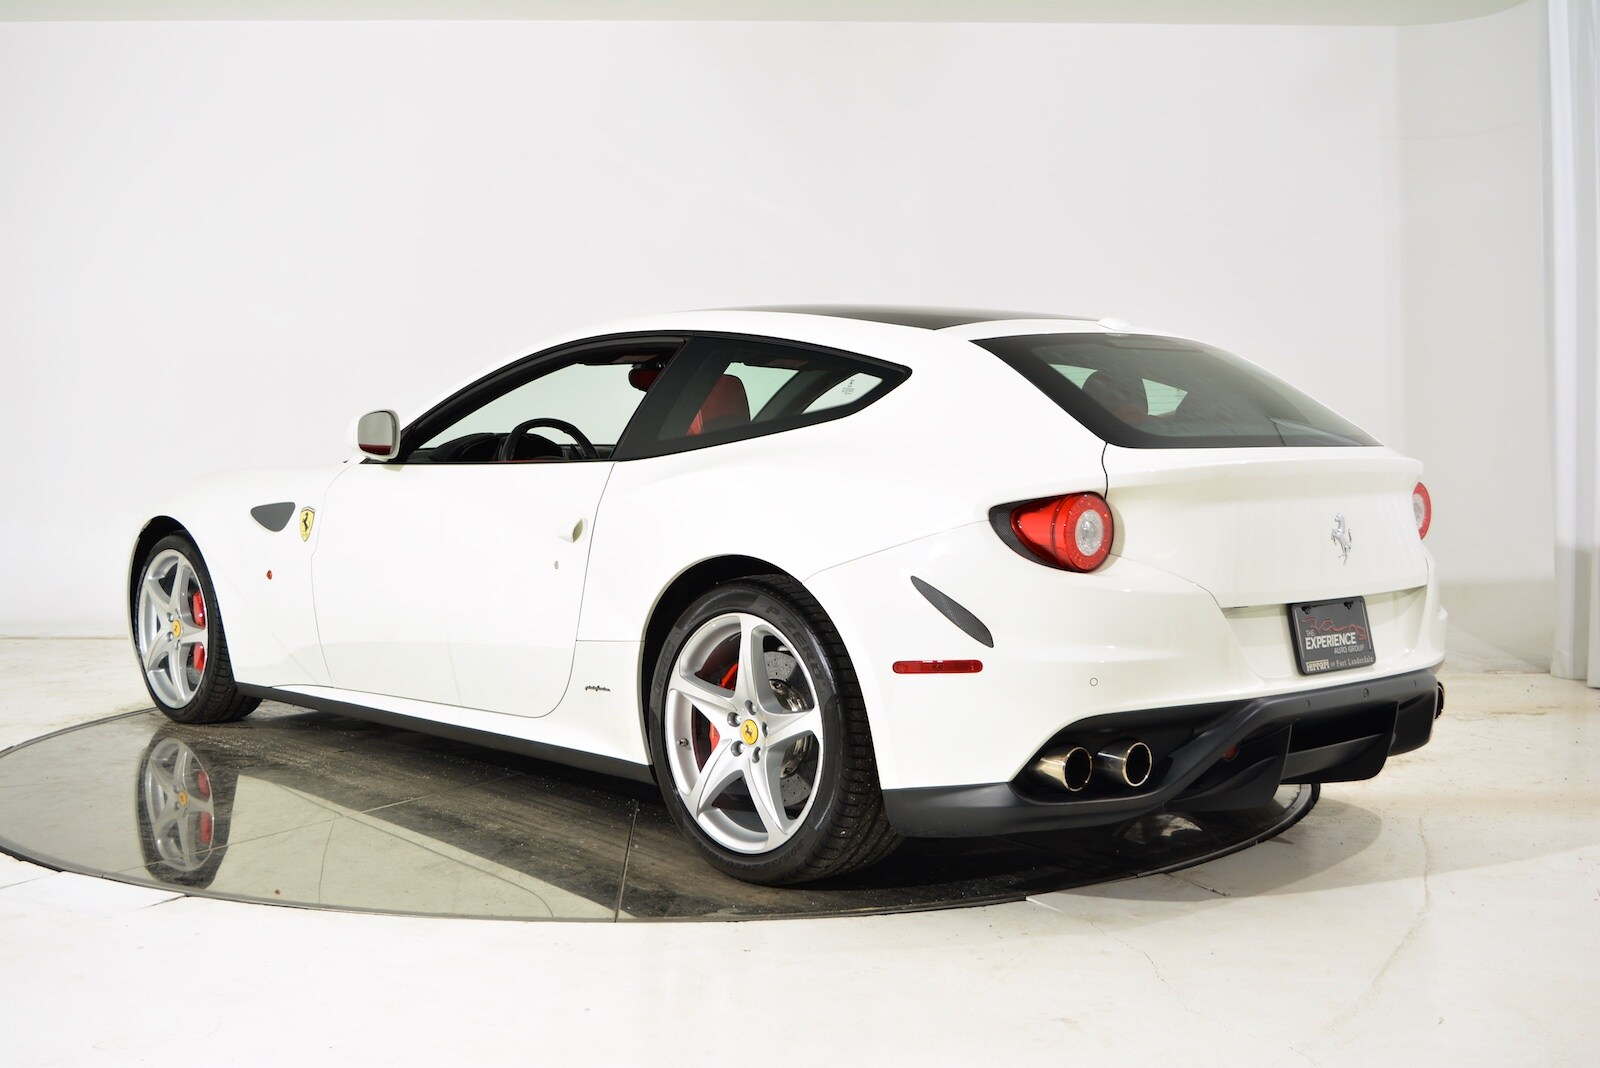 used 2016 ferrari ff for sale fort lauderdale fl zff73ska7g0212963. Black Bedroom Furniture Sets. Home Design Ideas